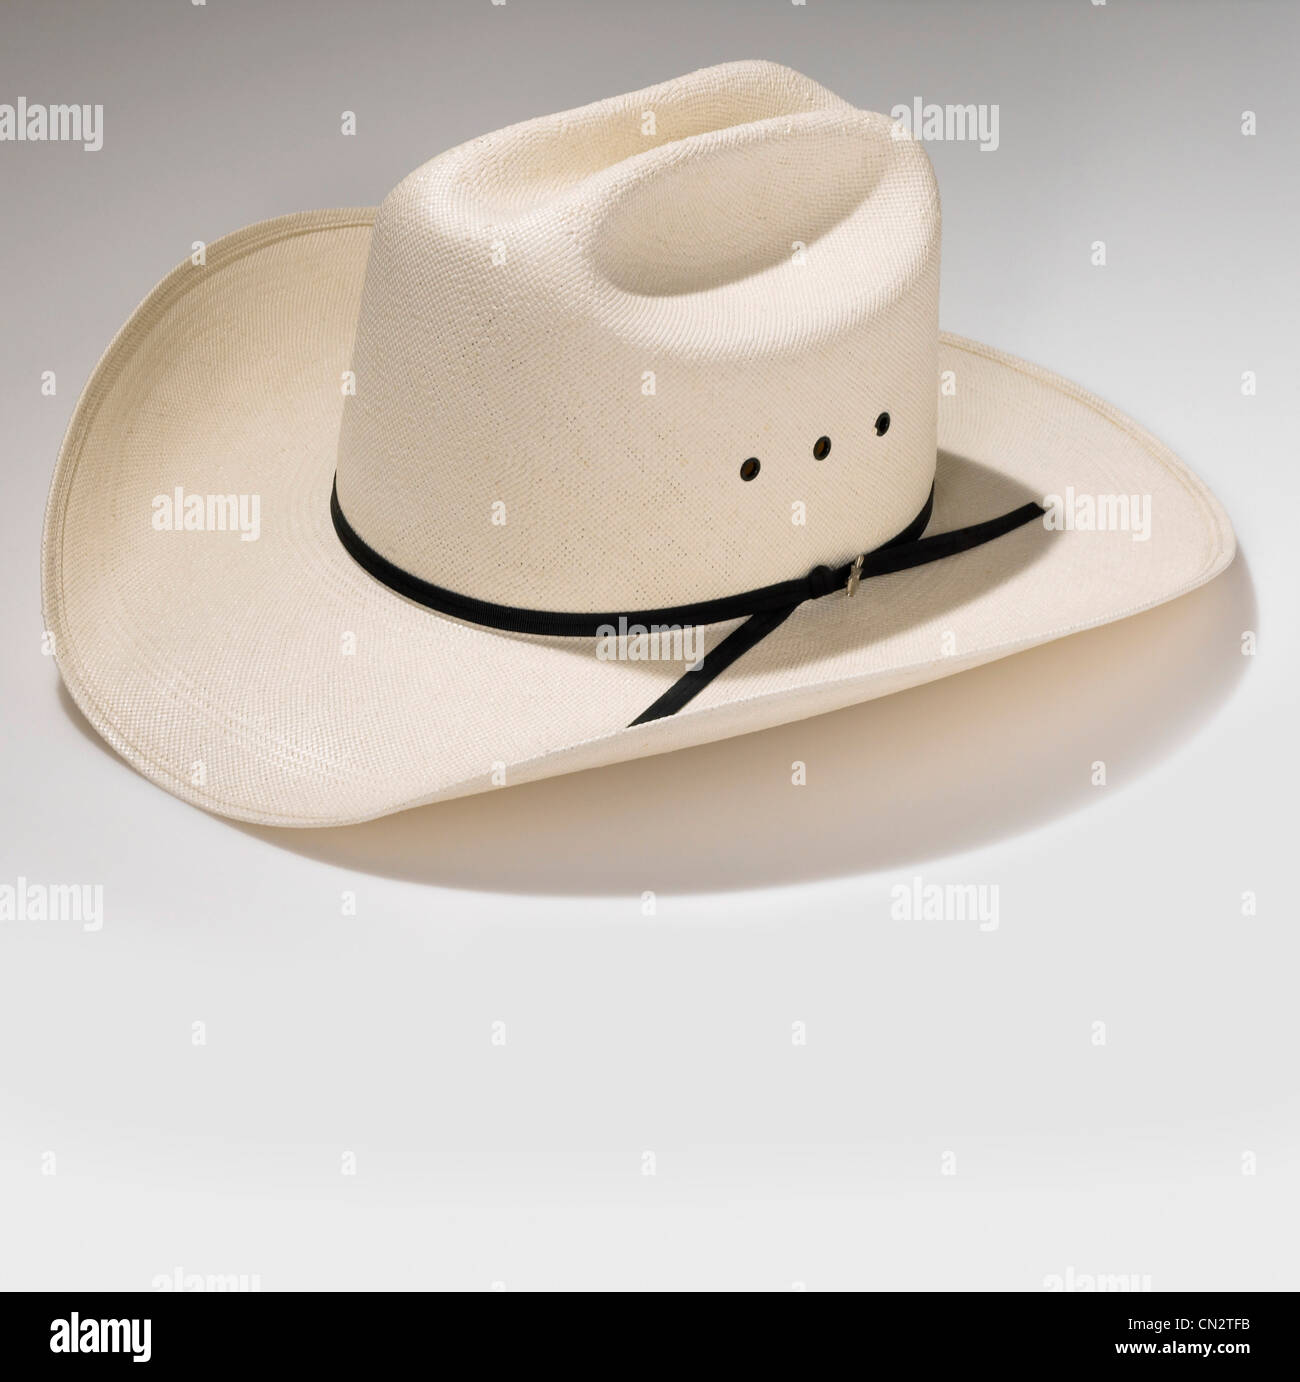 4a012806b44 Western Hat Stock Photos   Western Hat Stock Images - Alamy